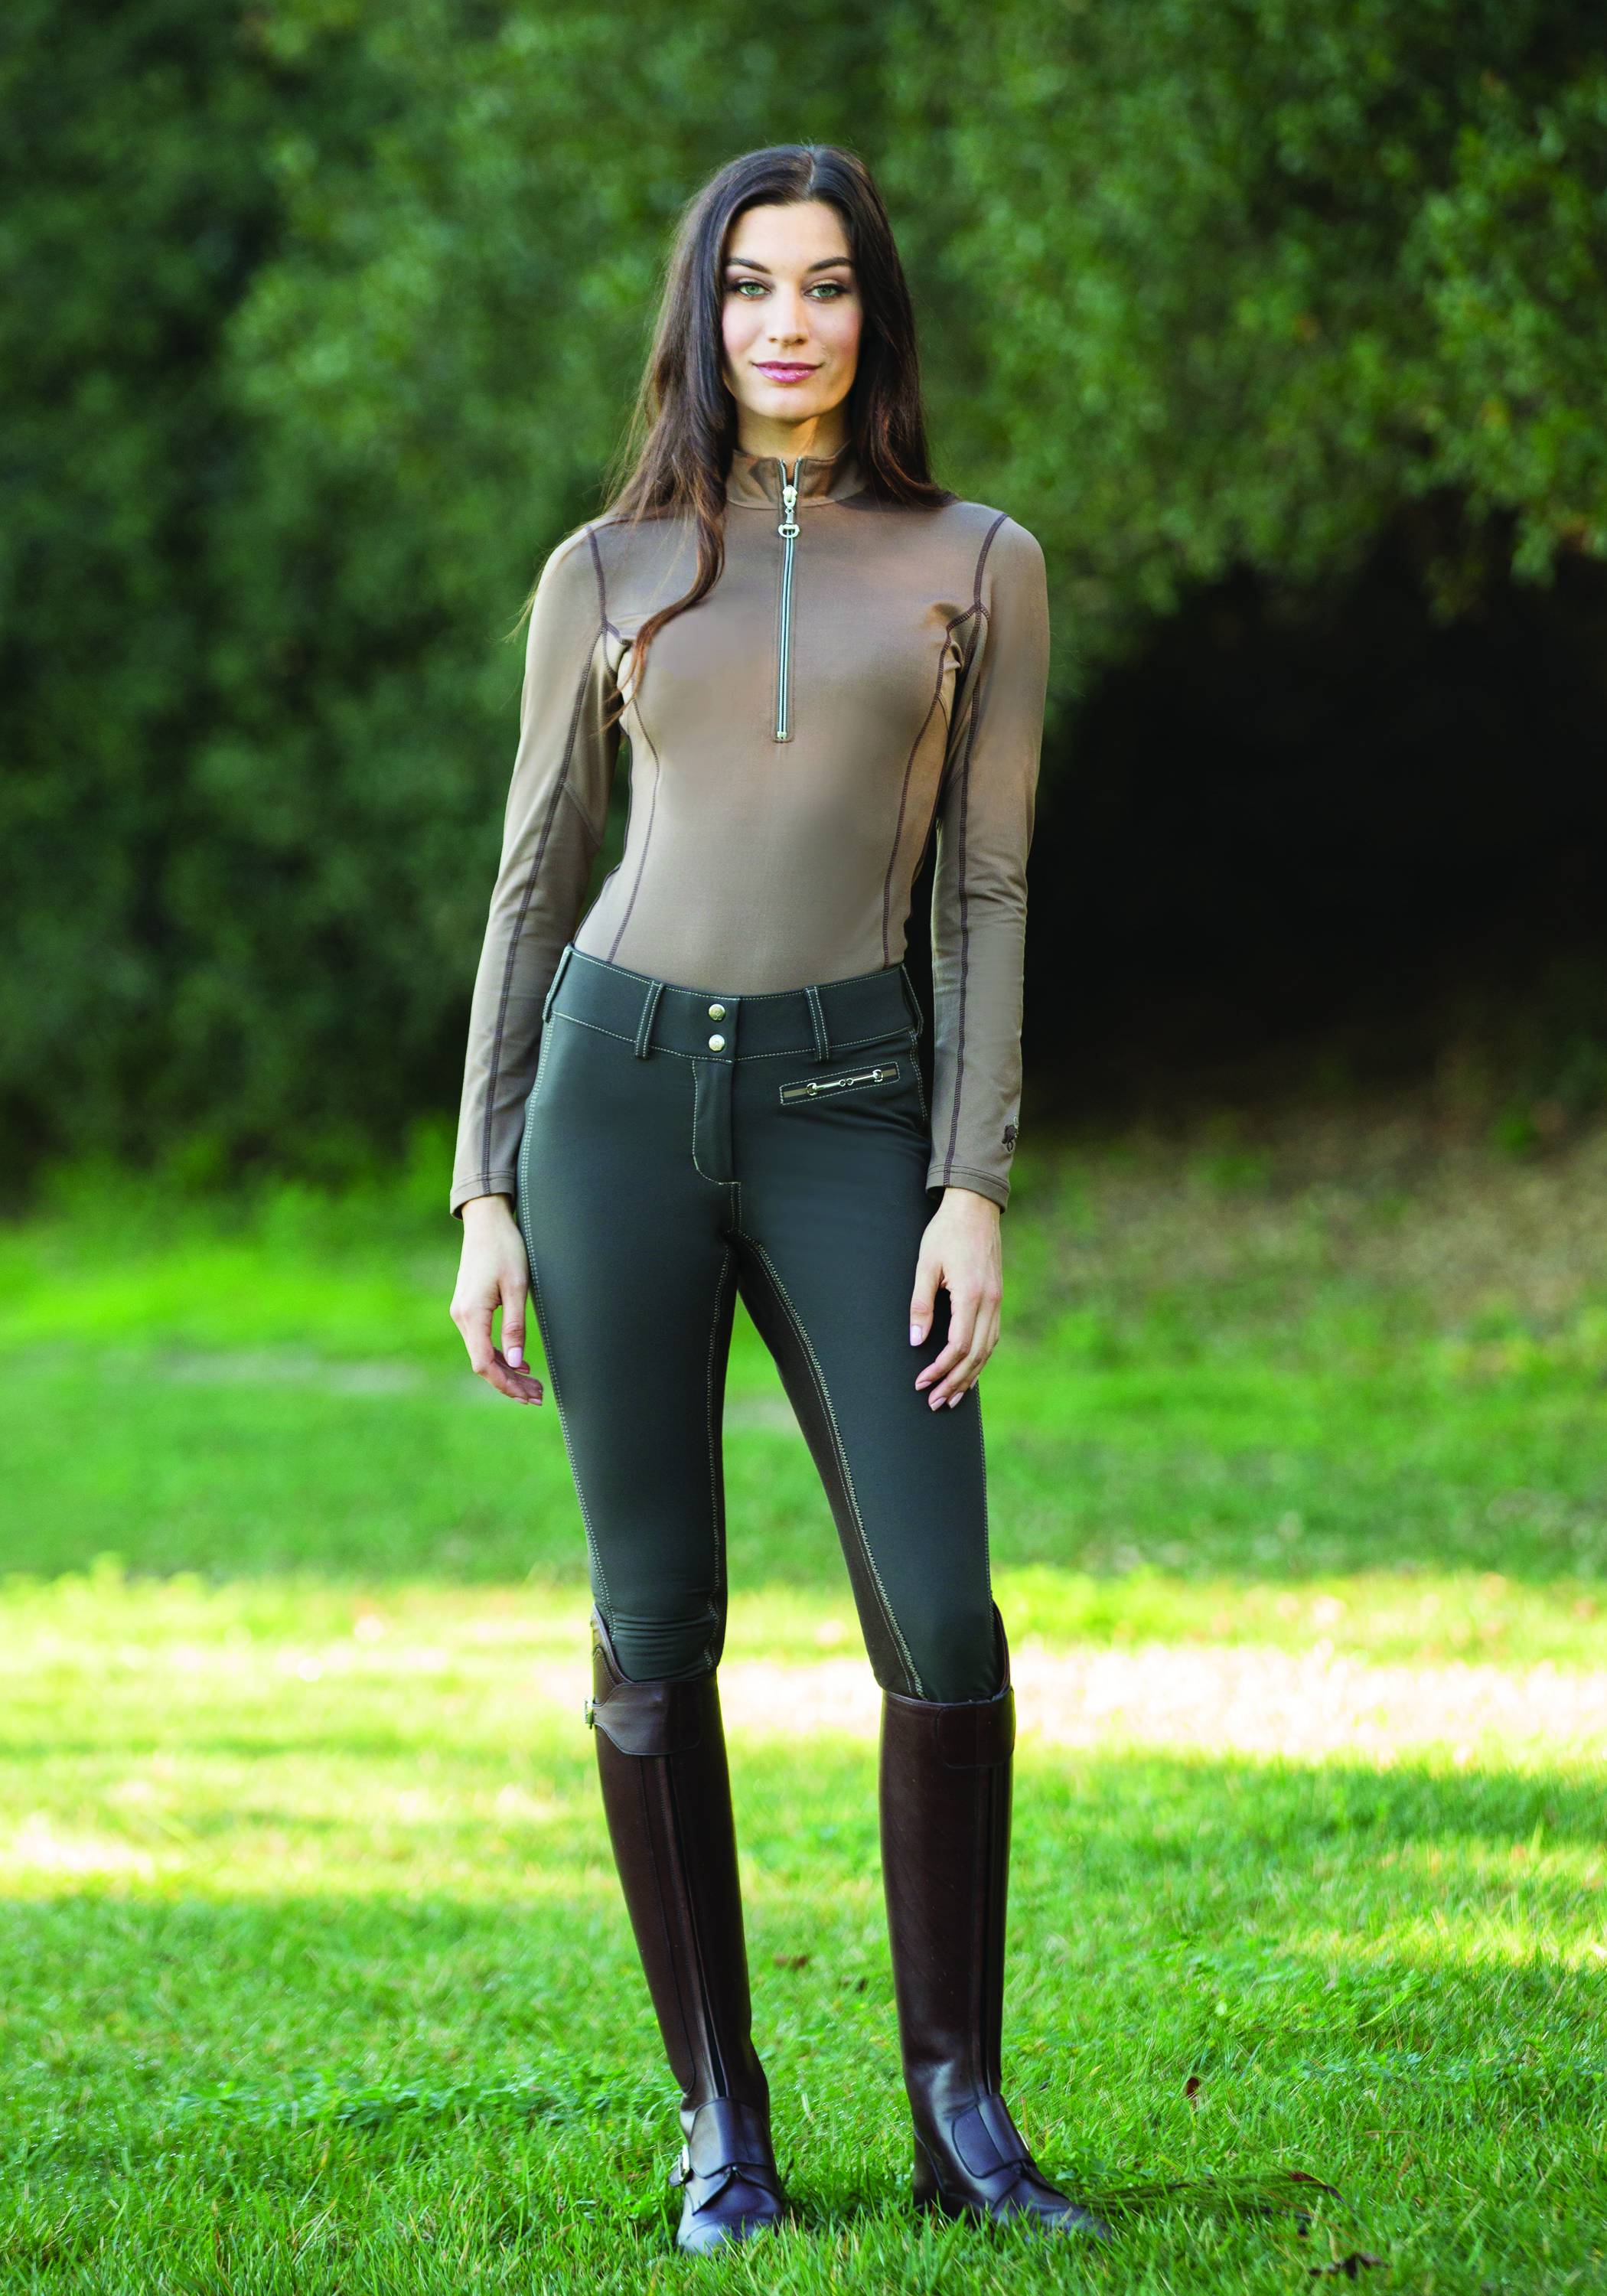 Goode Rider Iconic Breeches - Ladies, Full Seat